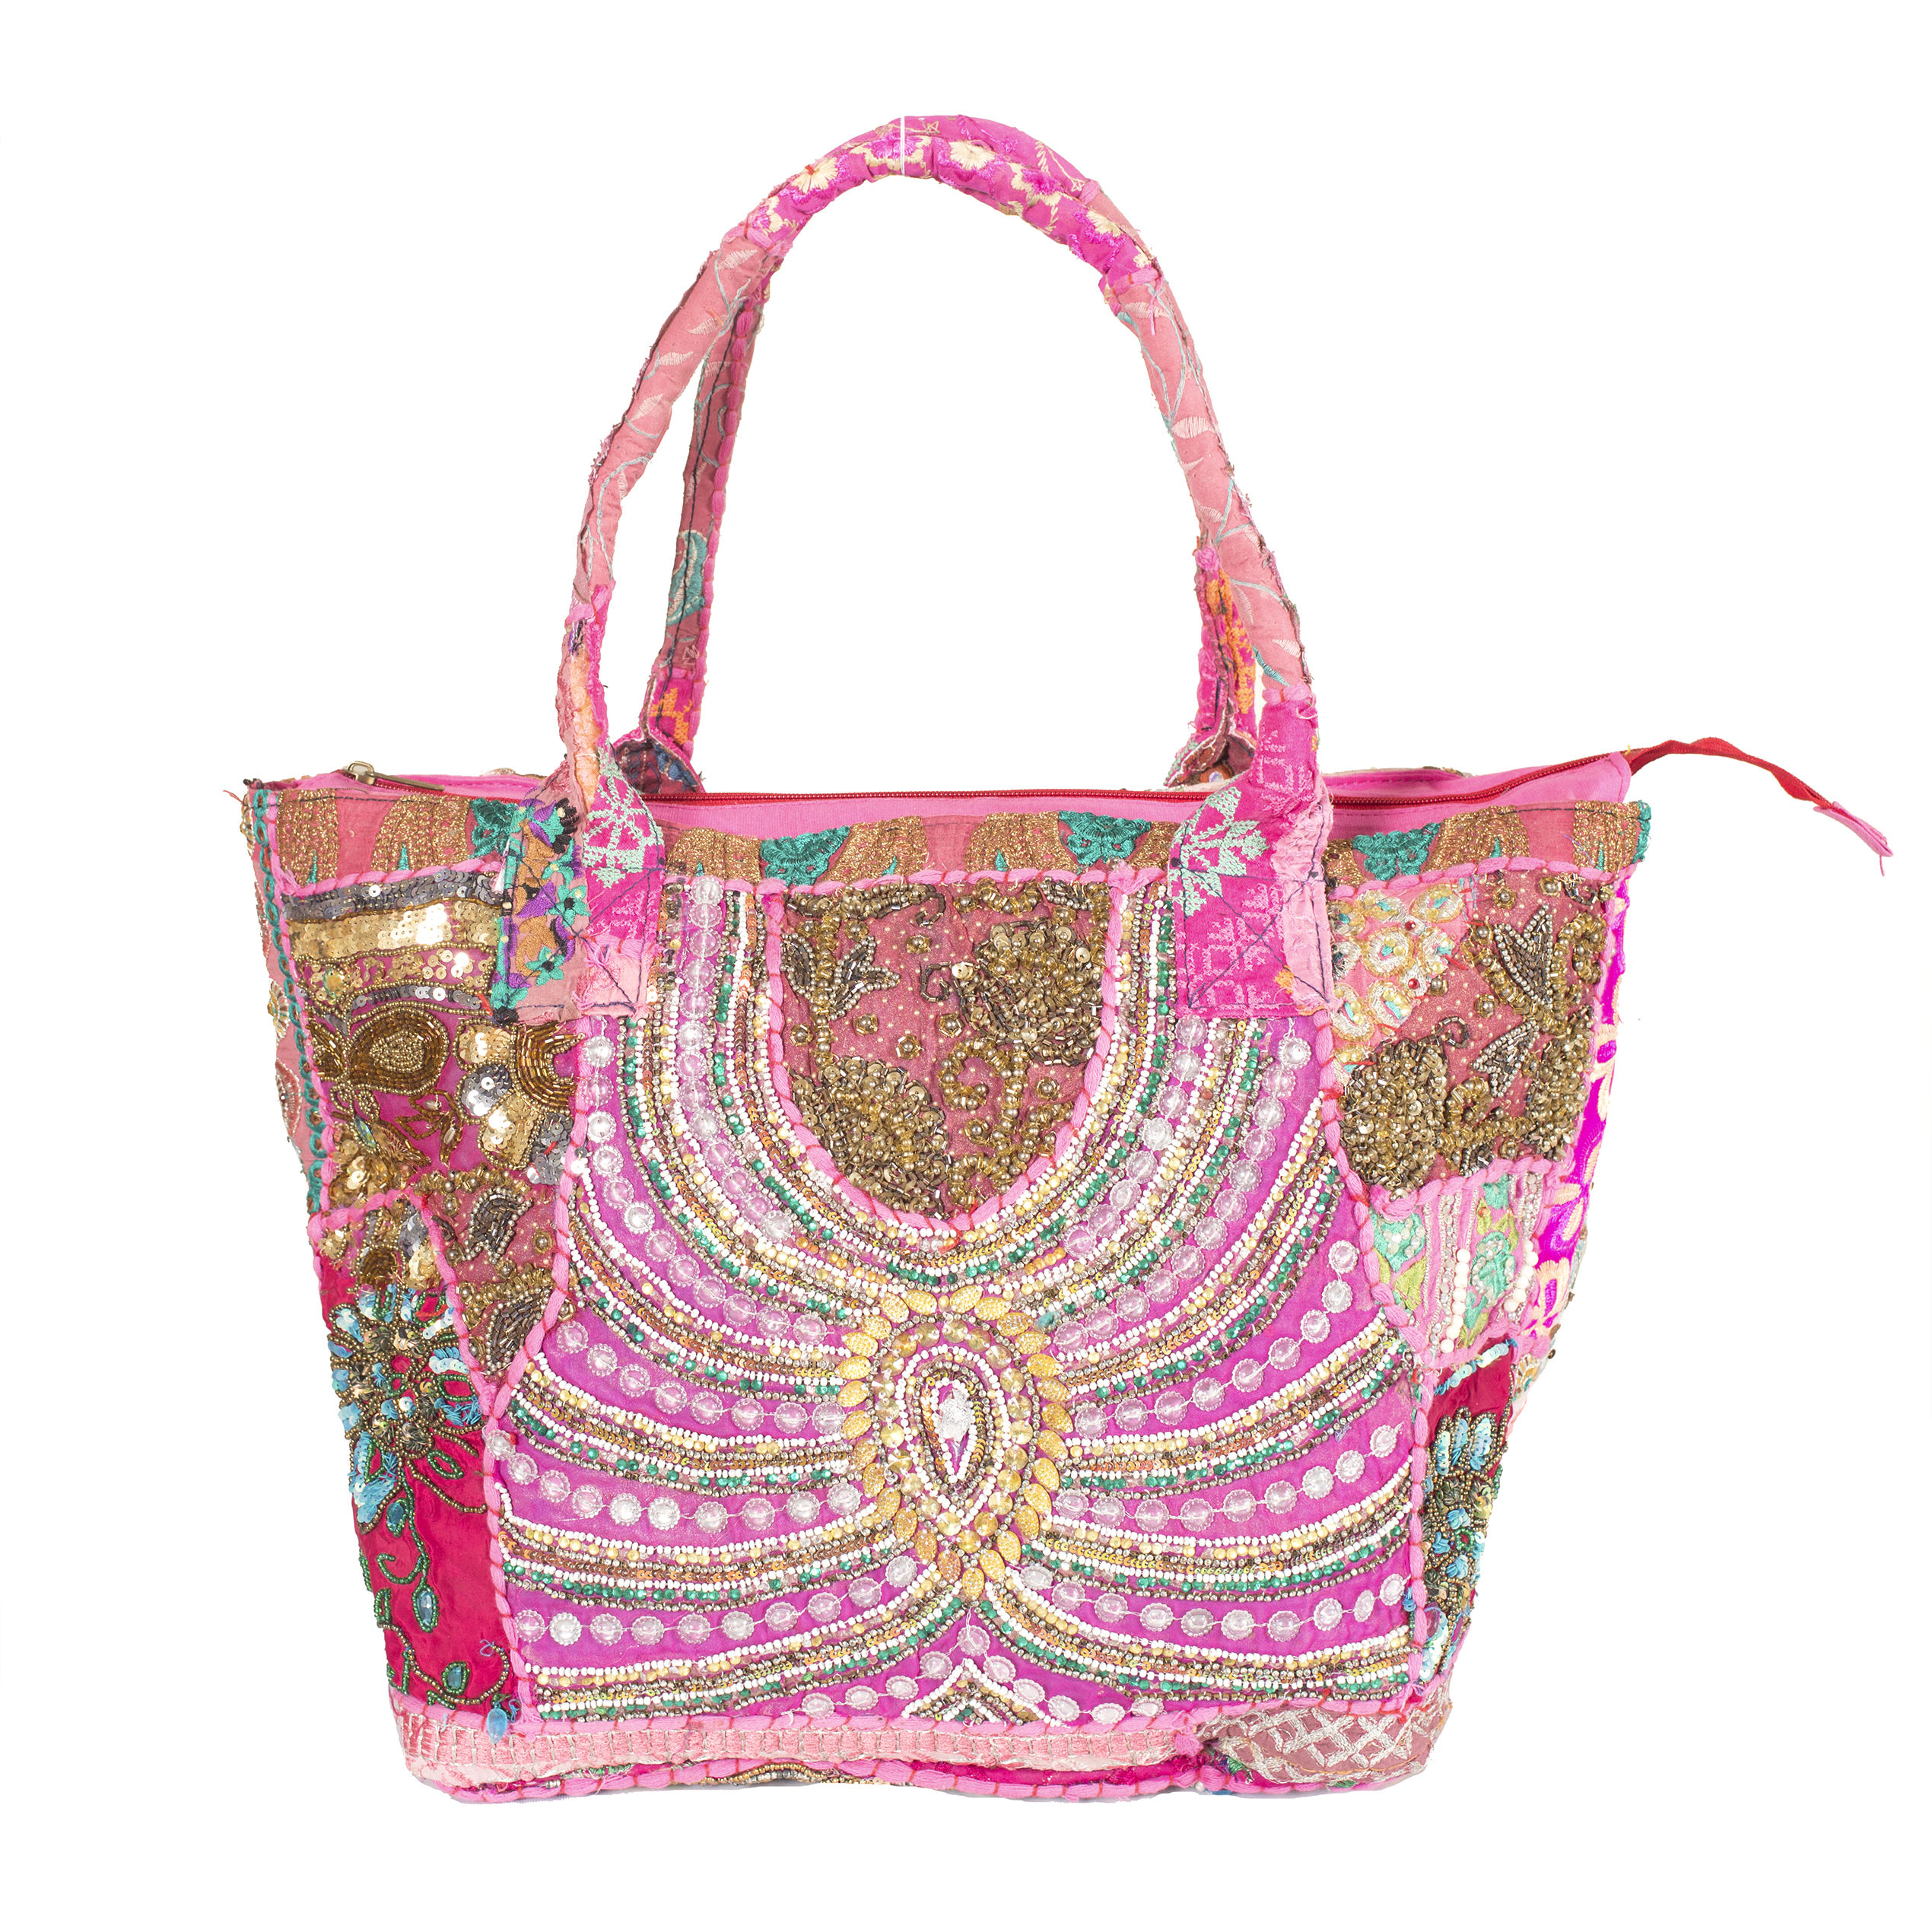 Indian vintage embroidered heavy bag women's fashion hobo bag shoulder bags pink